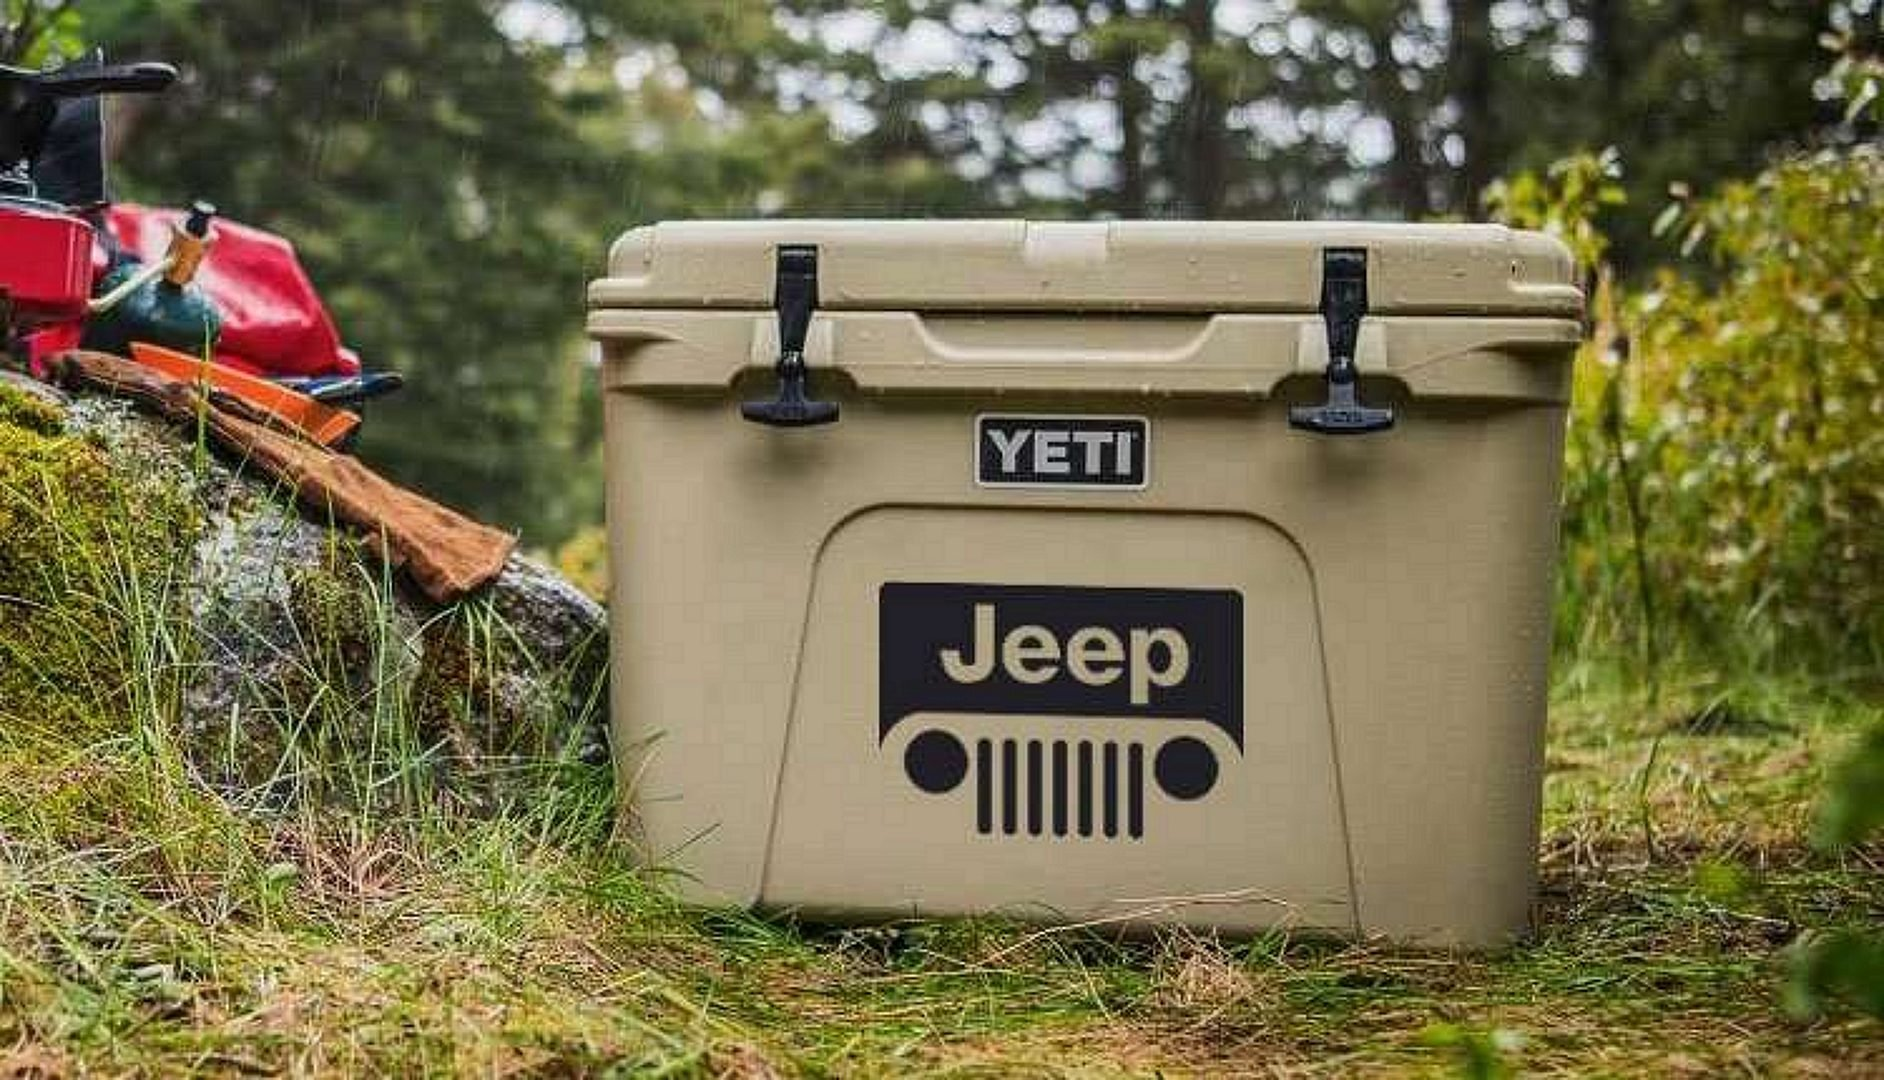 YETI Cooler with Jeep Logo